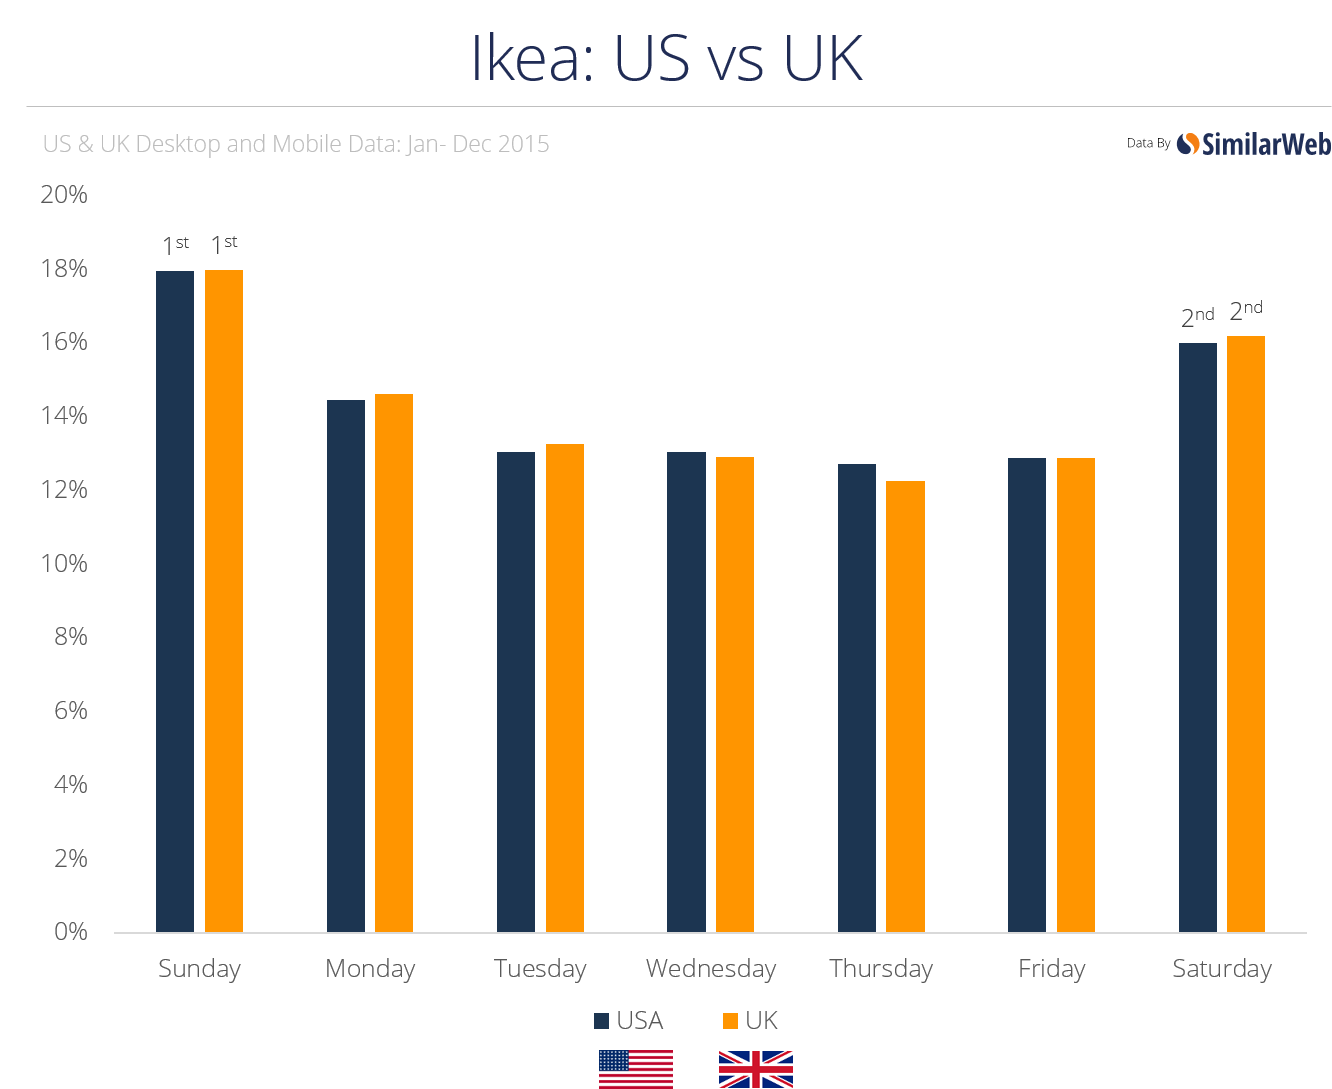 ikea us vs uk